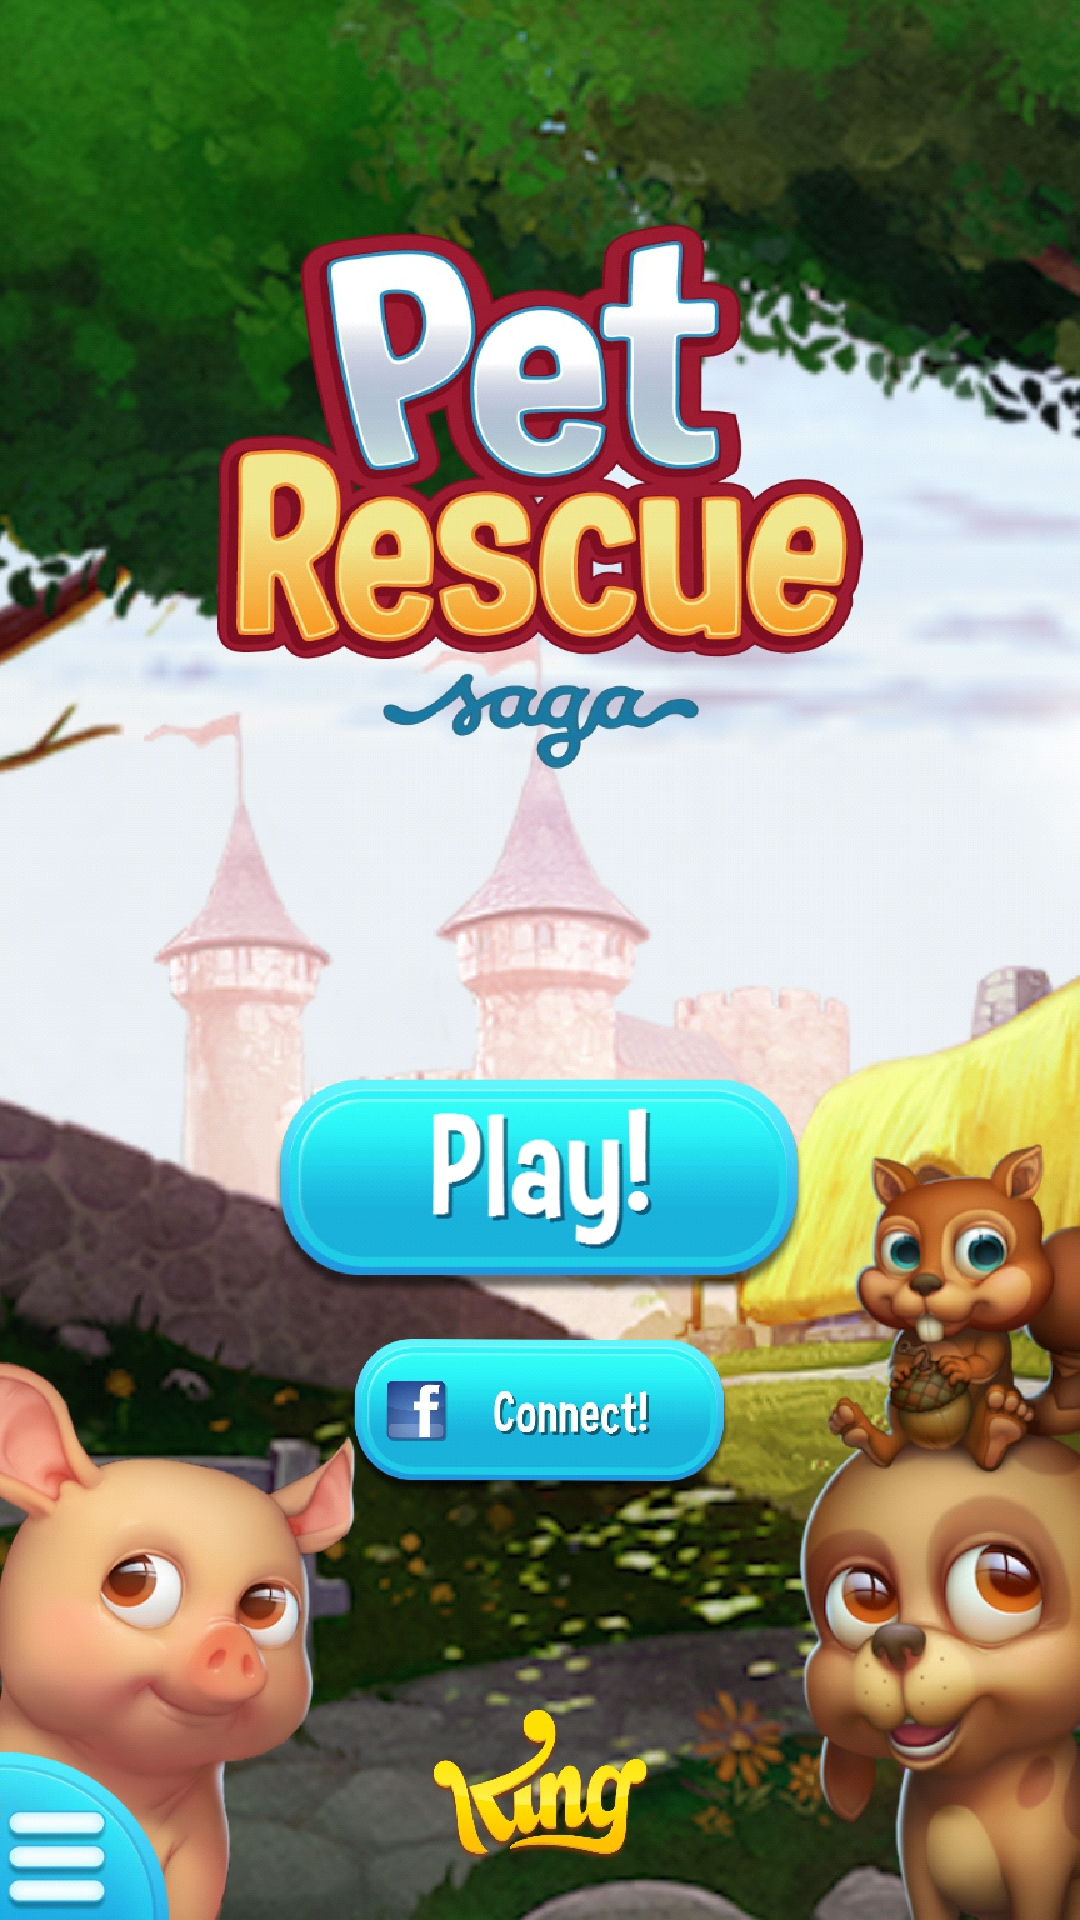 Bamse: Pet Rescue Saga: Level 004 (Android) 15,820 points on 2019-06-07 11:28:14